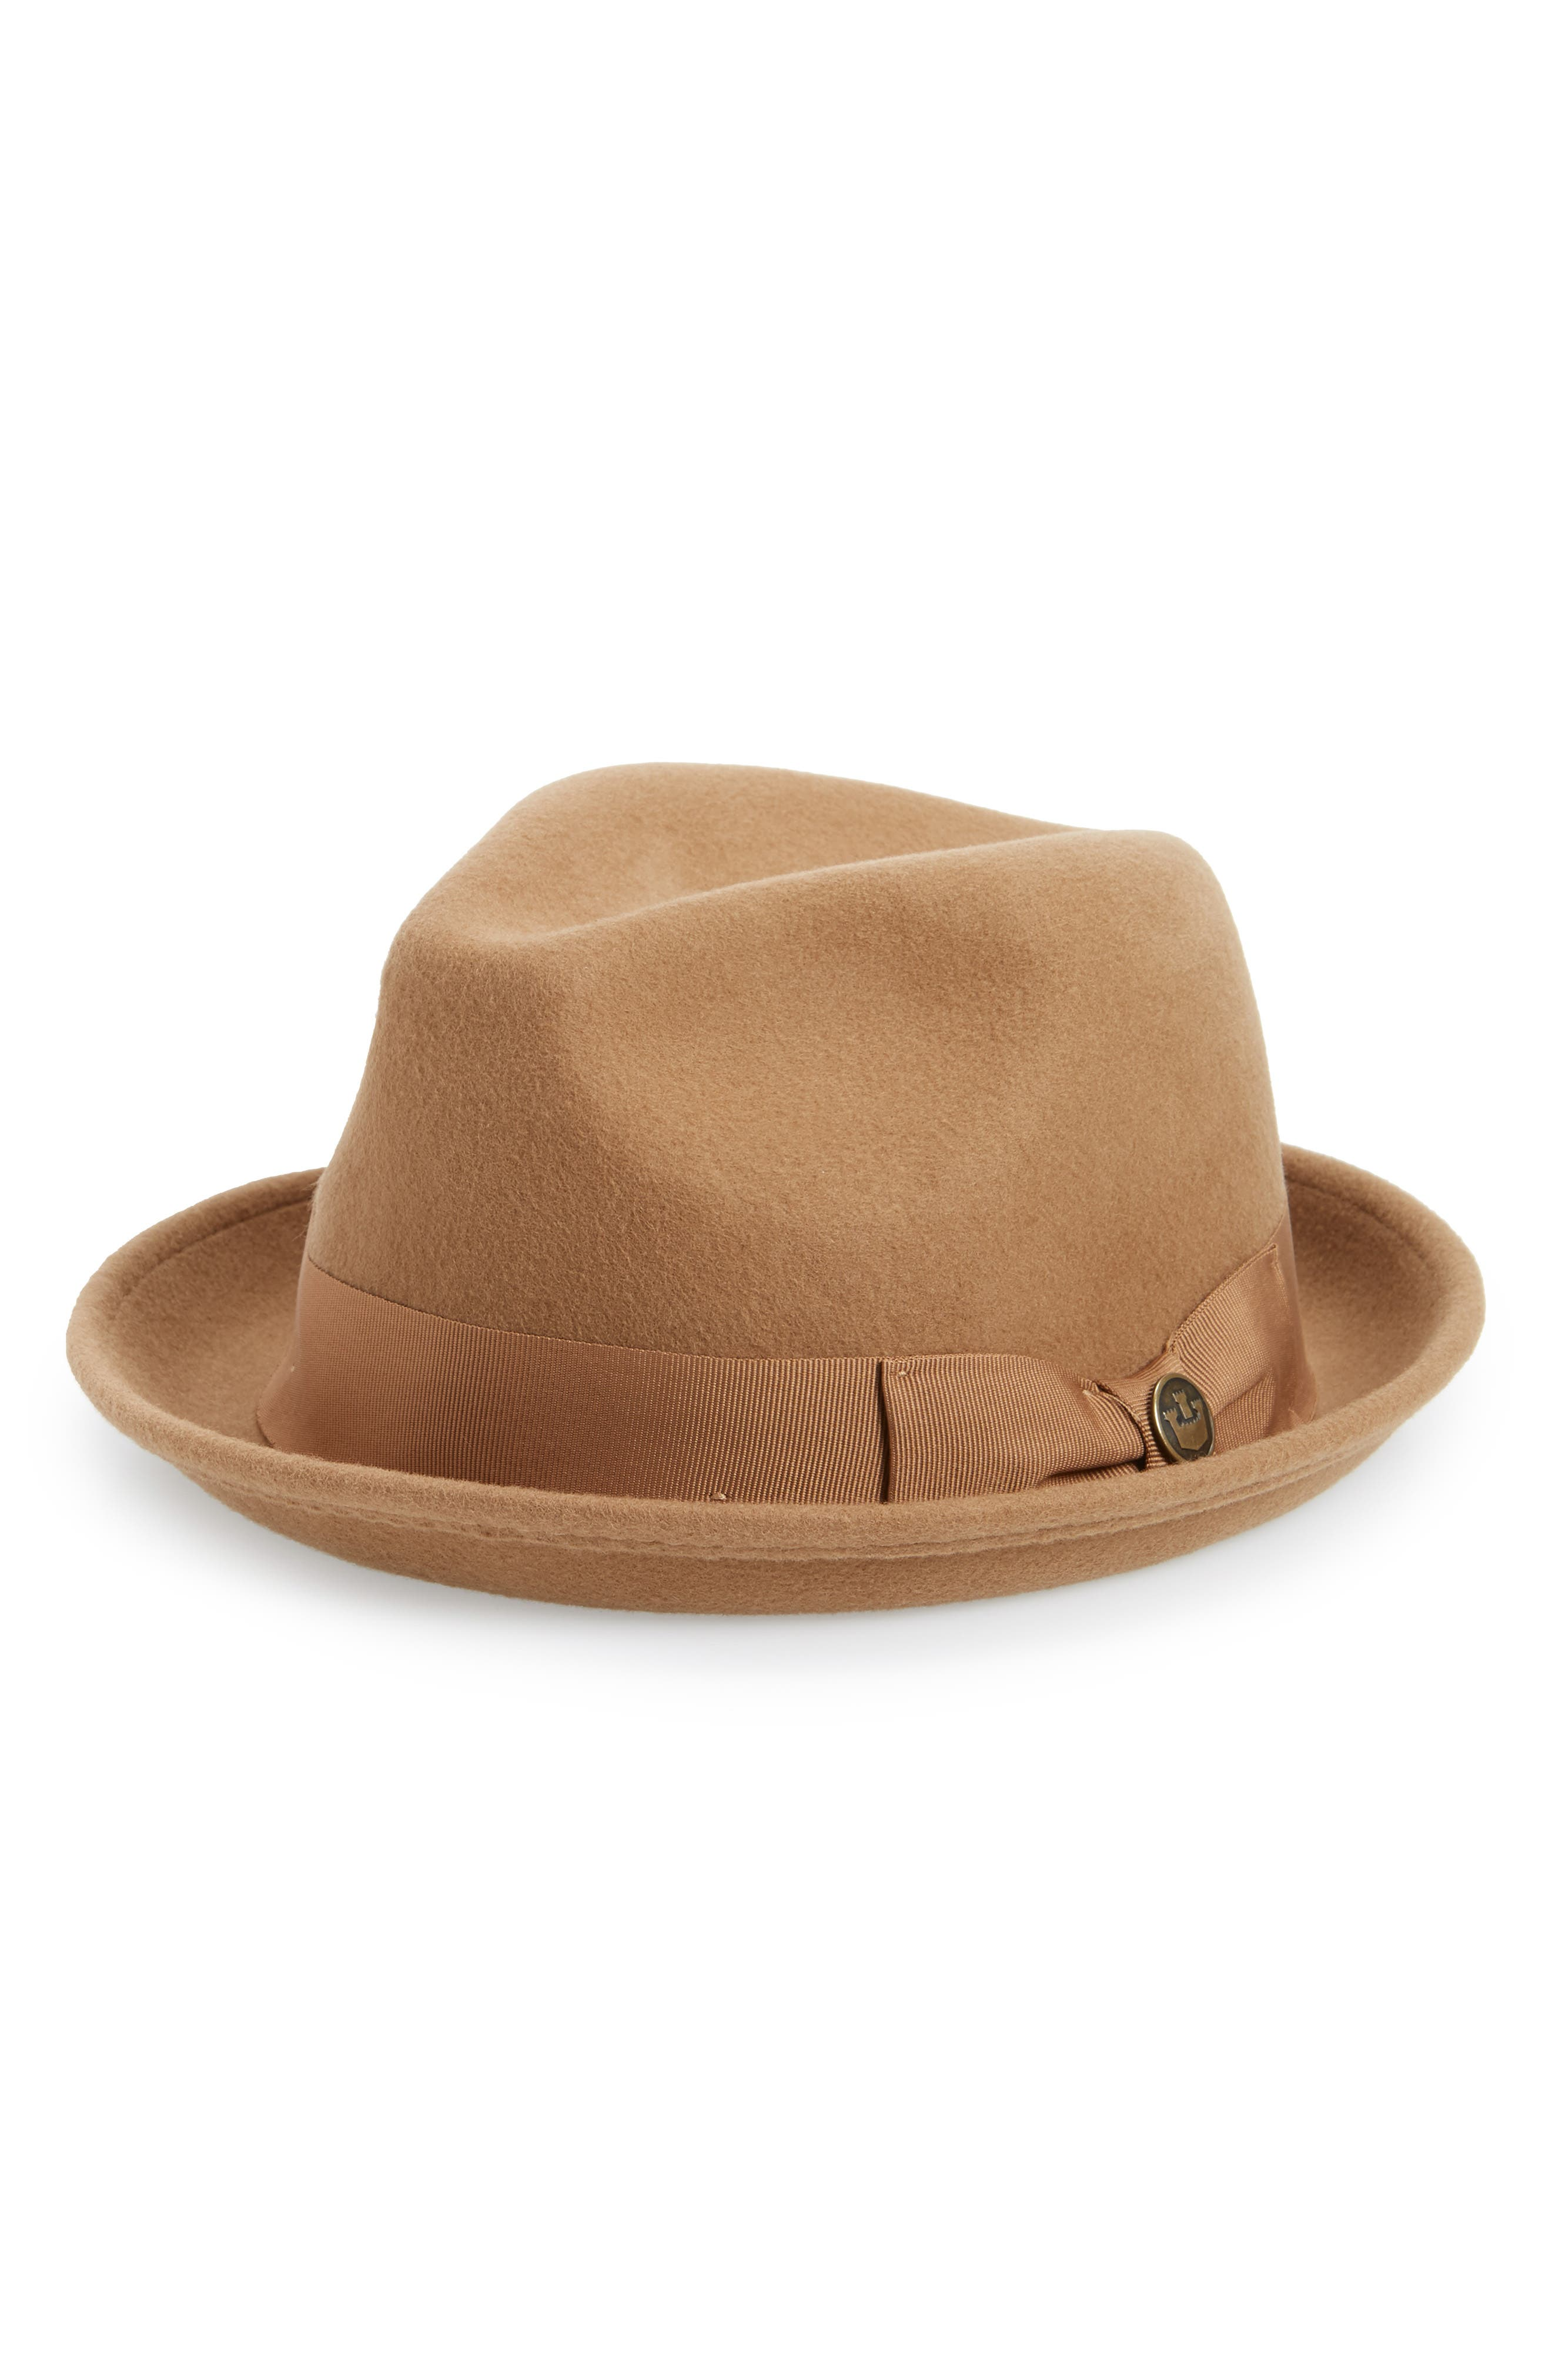 Goorin Bros. The Good Boy Felt Wool Fedora - Beige